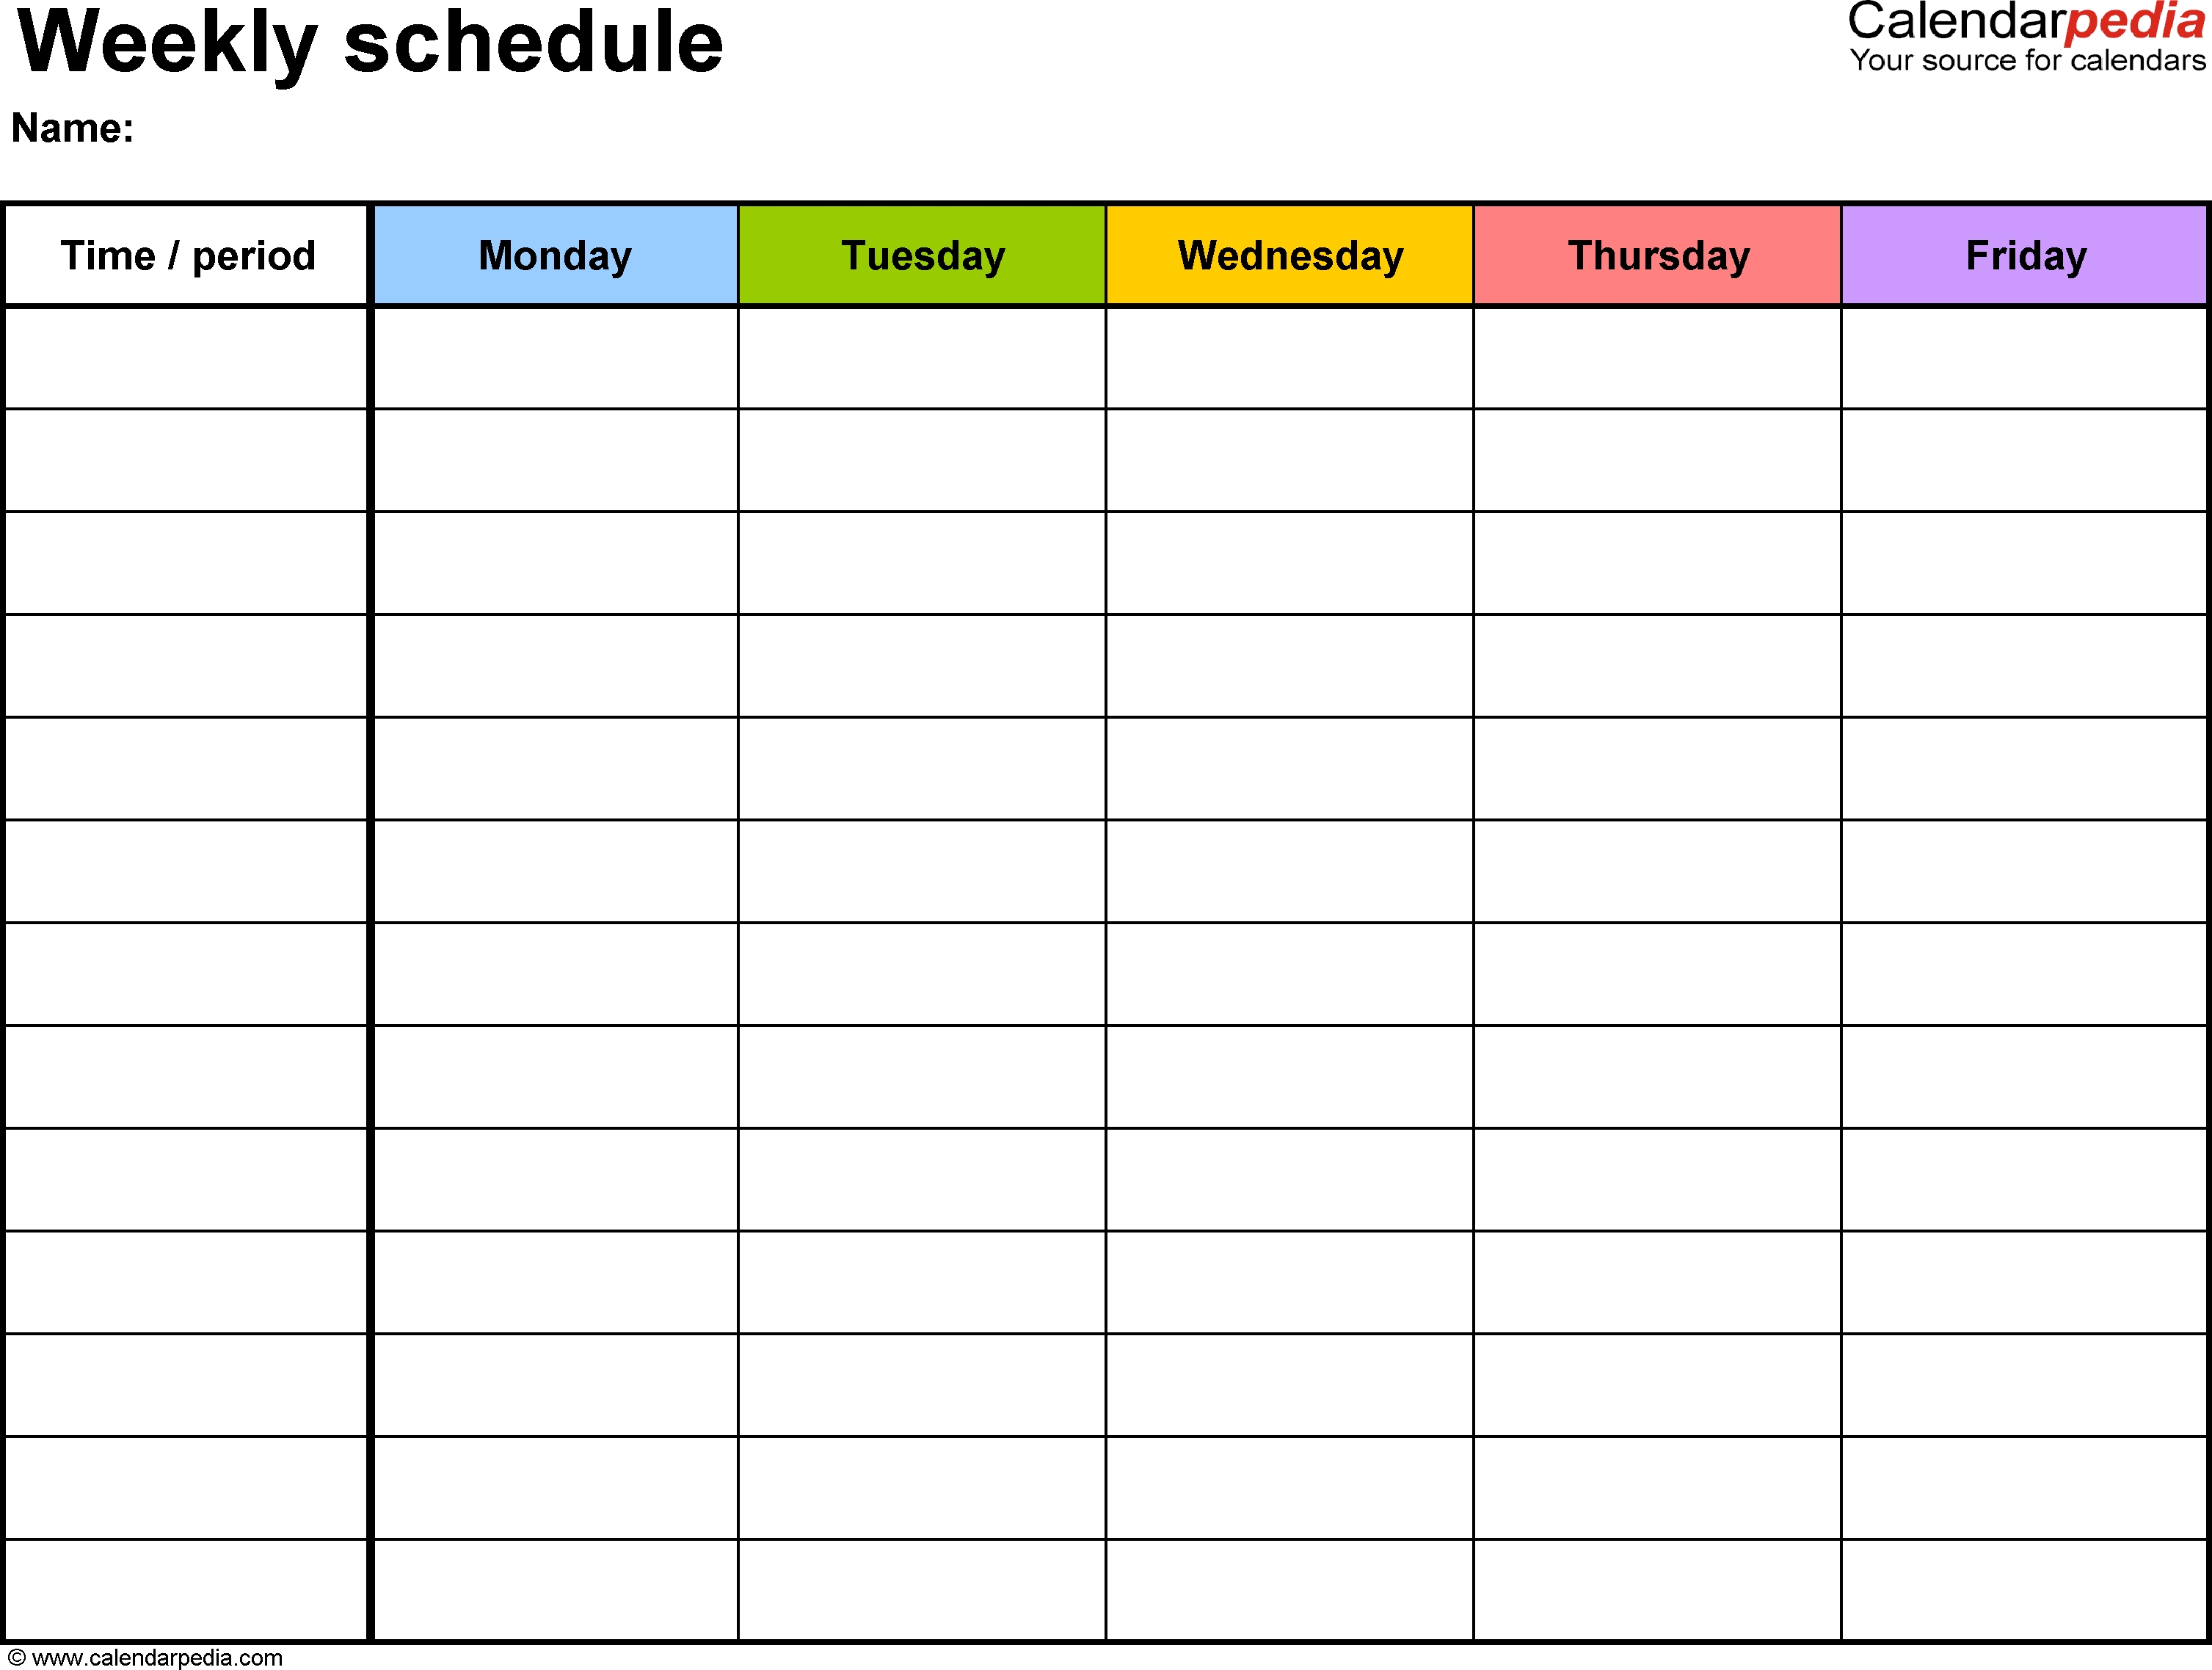 Free Weekly Schedule Templates For Excel - 18 Templates-7 Weeks Calendar Template